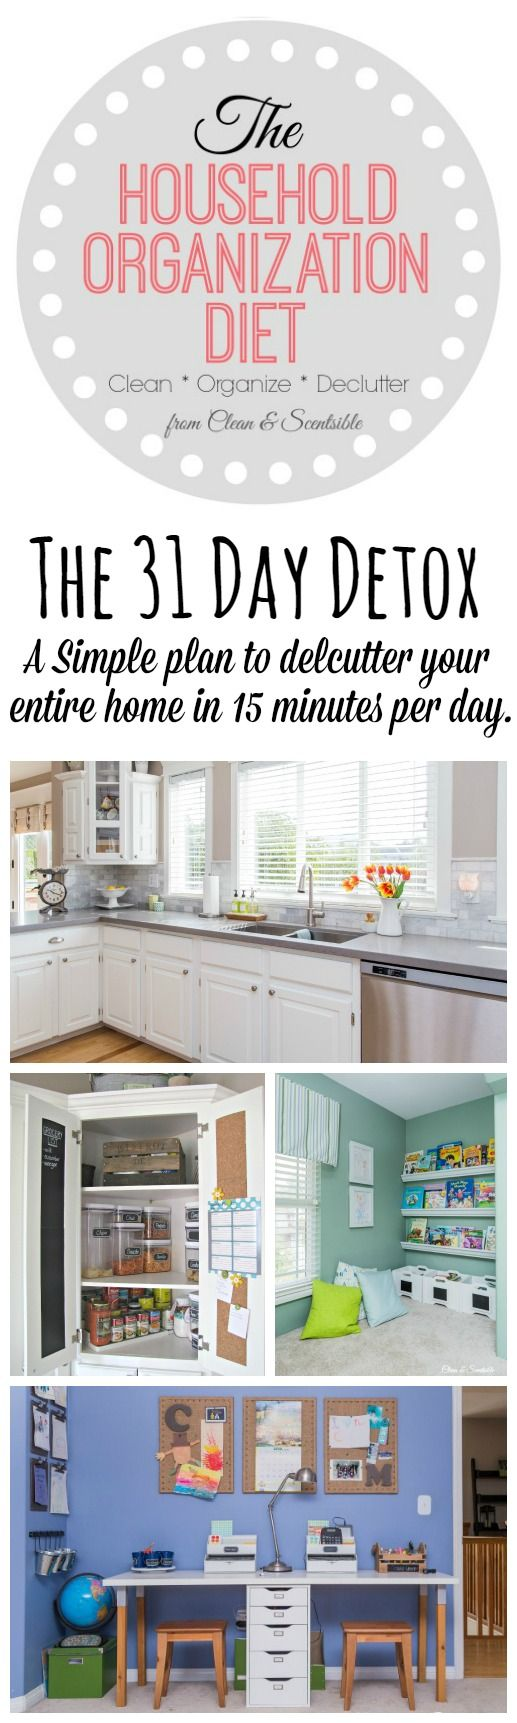 Follow this 31 day decluttering challenge to get you started on your way to an organized home!